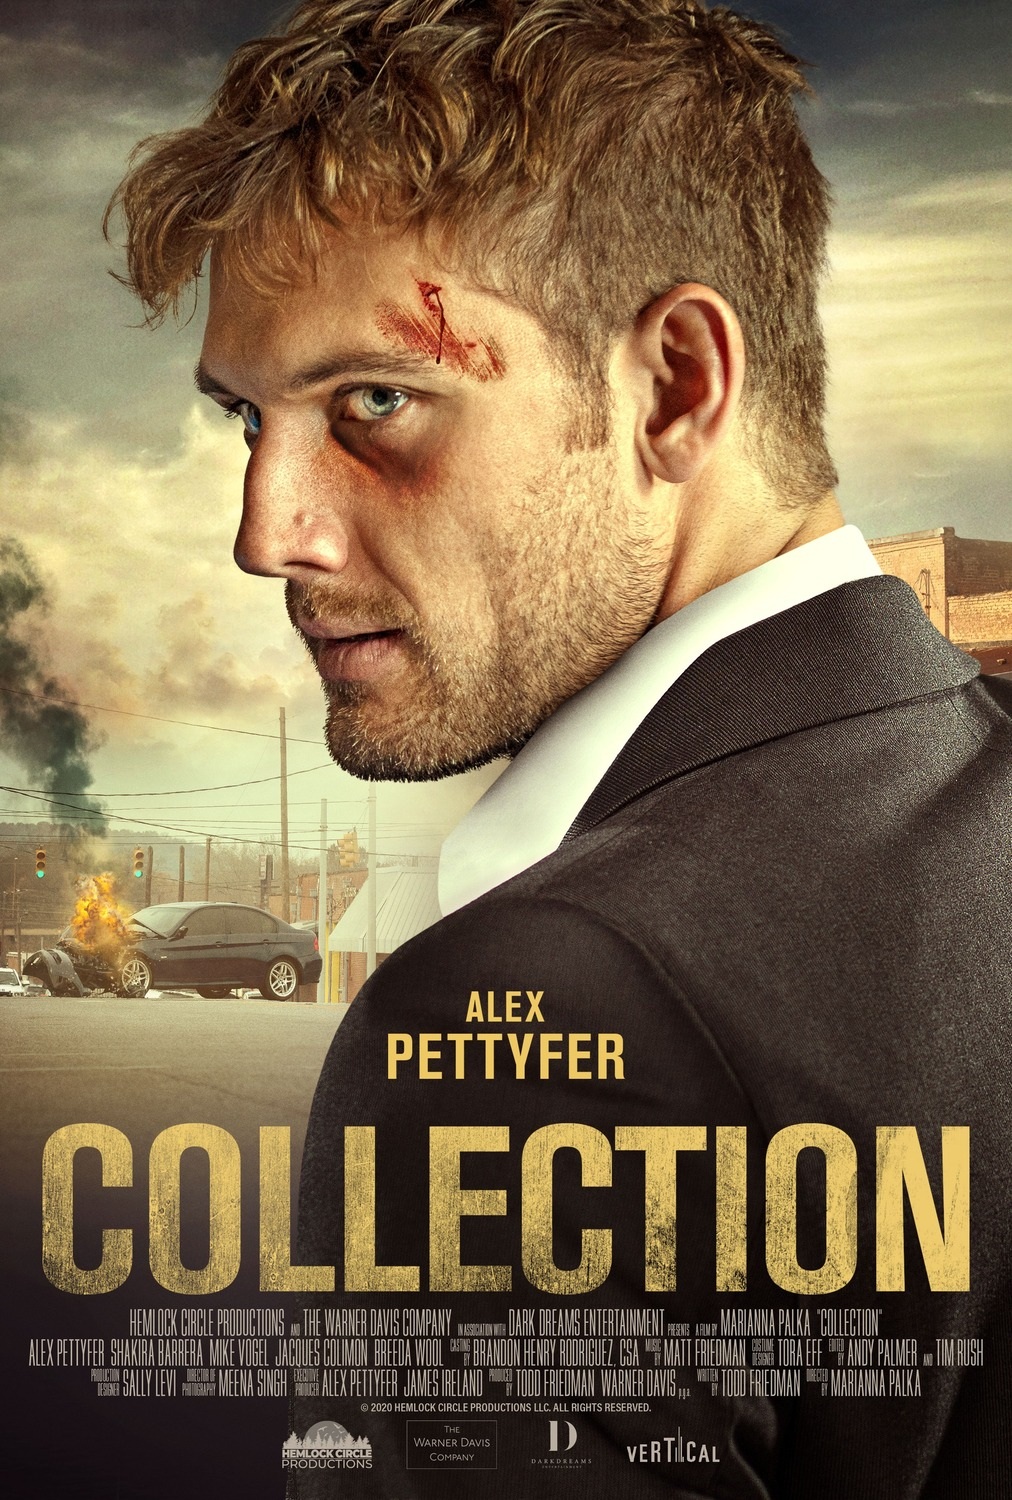 Download Collection (2021) Full Movie [In English] With Hindi Subtitles | WebRip 720p [1XBET] FREE on 1XCinema.com & KatMovieHD.sk